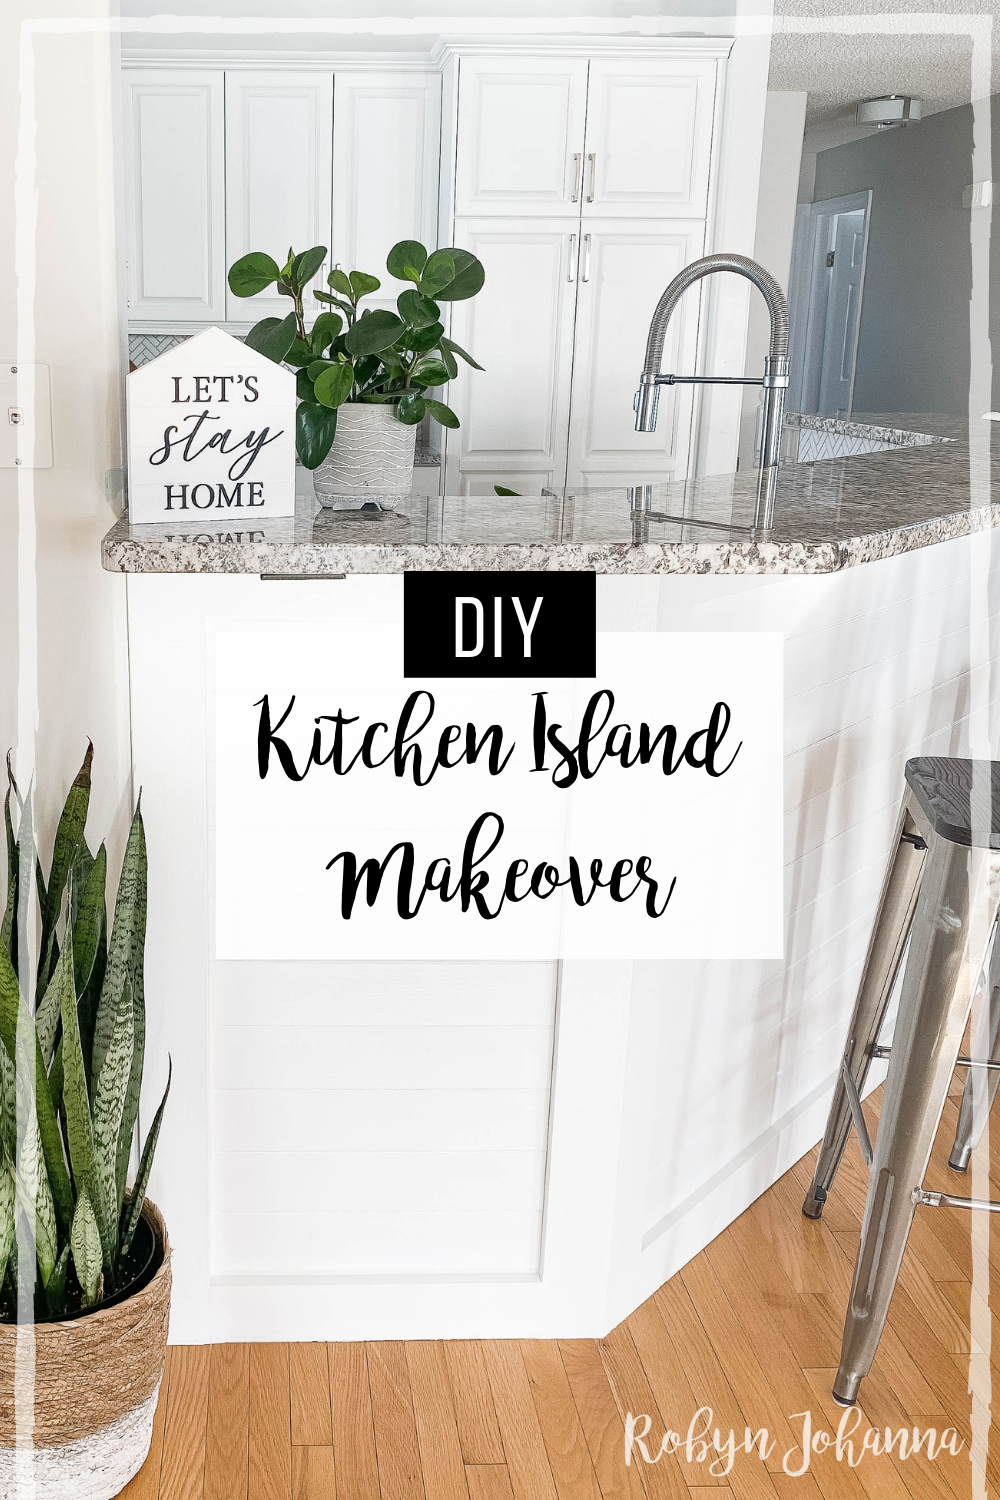 Are you thinking of updating your kitchen island? Check out this step-by-step horizontal plank tutorial that will help you do just that.